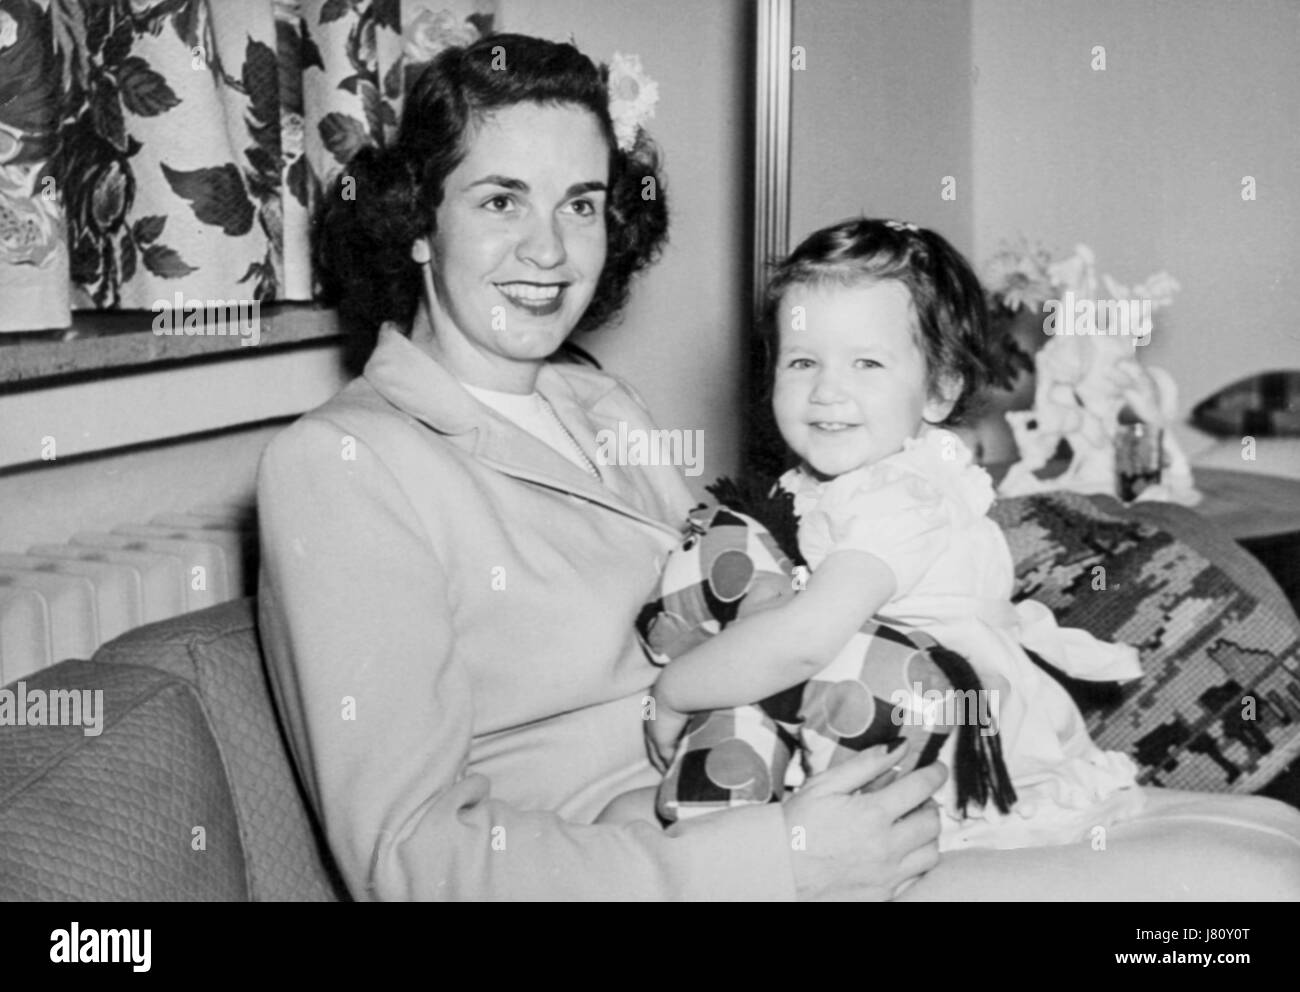 Mother and daughter 1950s vintage black and white photograph stock image